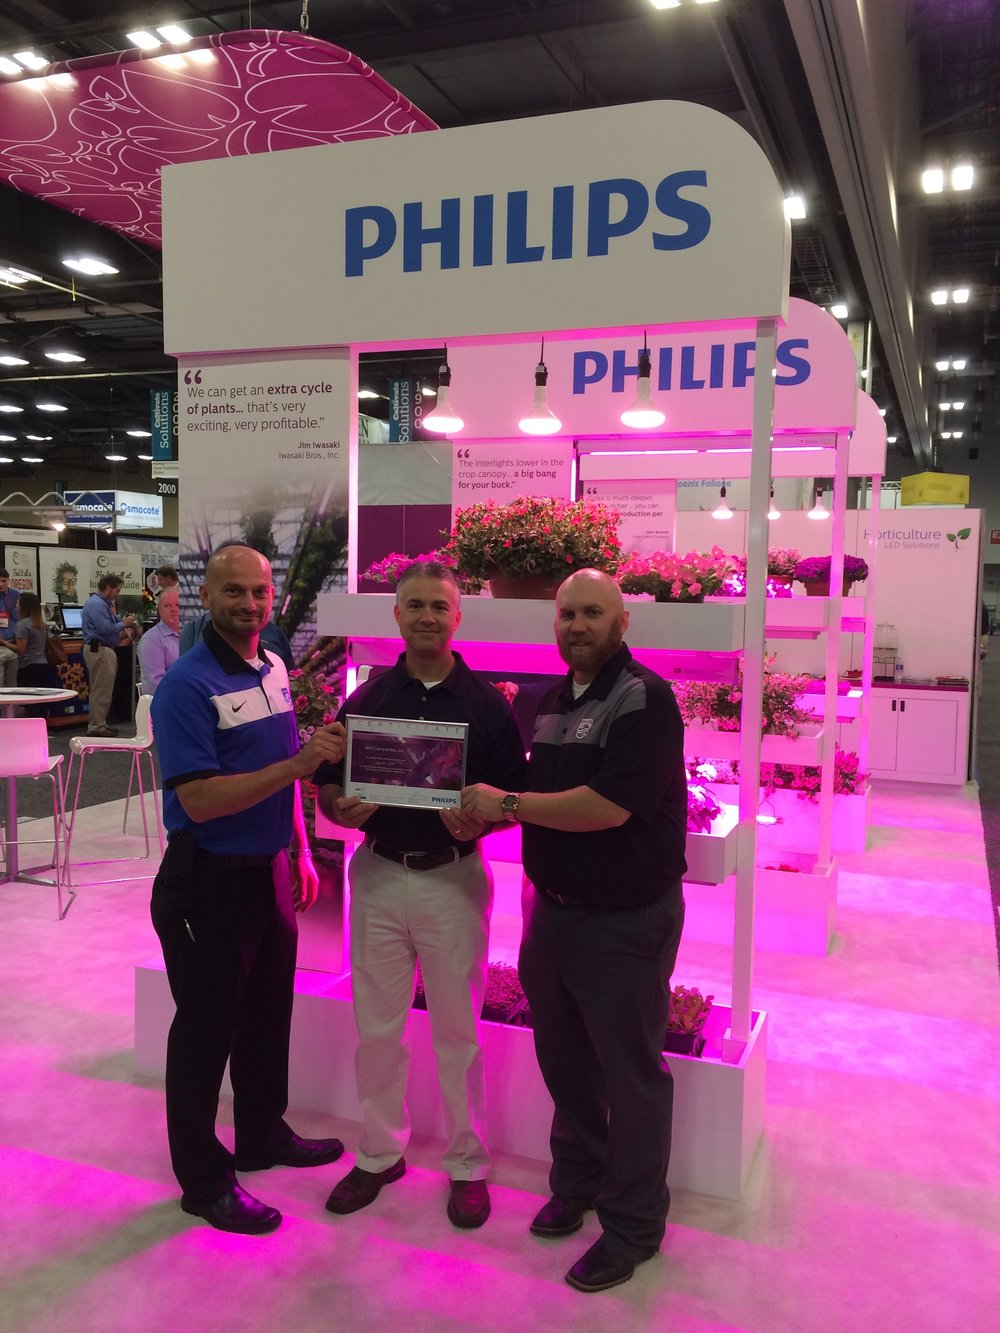 BWI_Philips_Sign_Partnership_Agreement.jpg